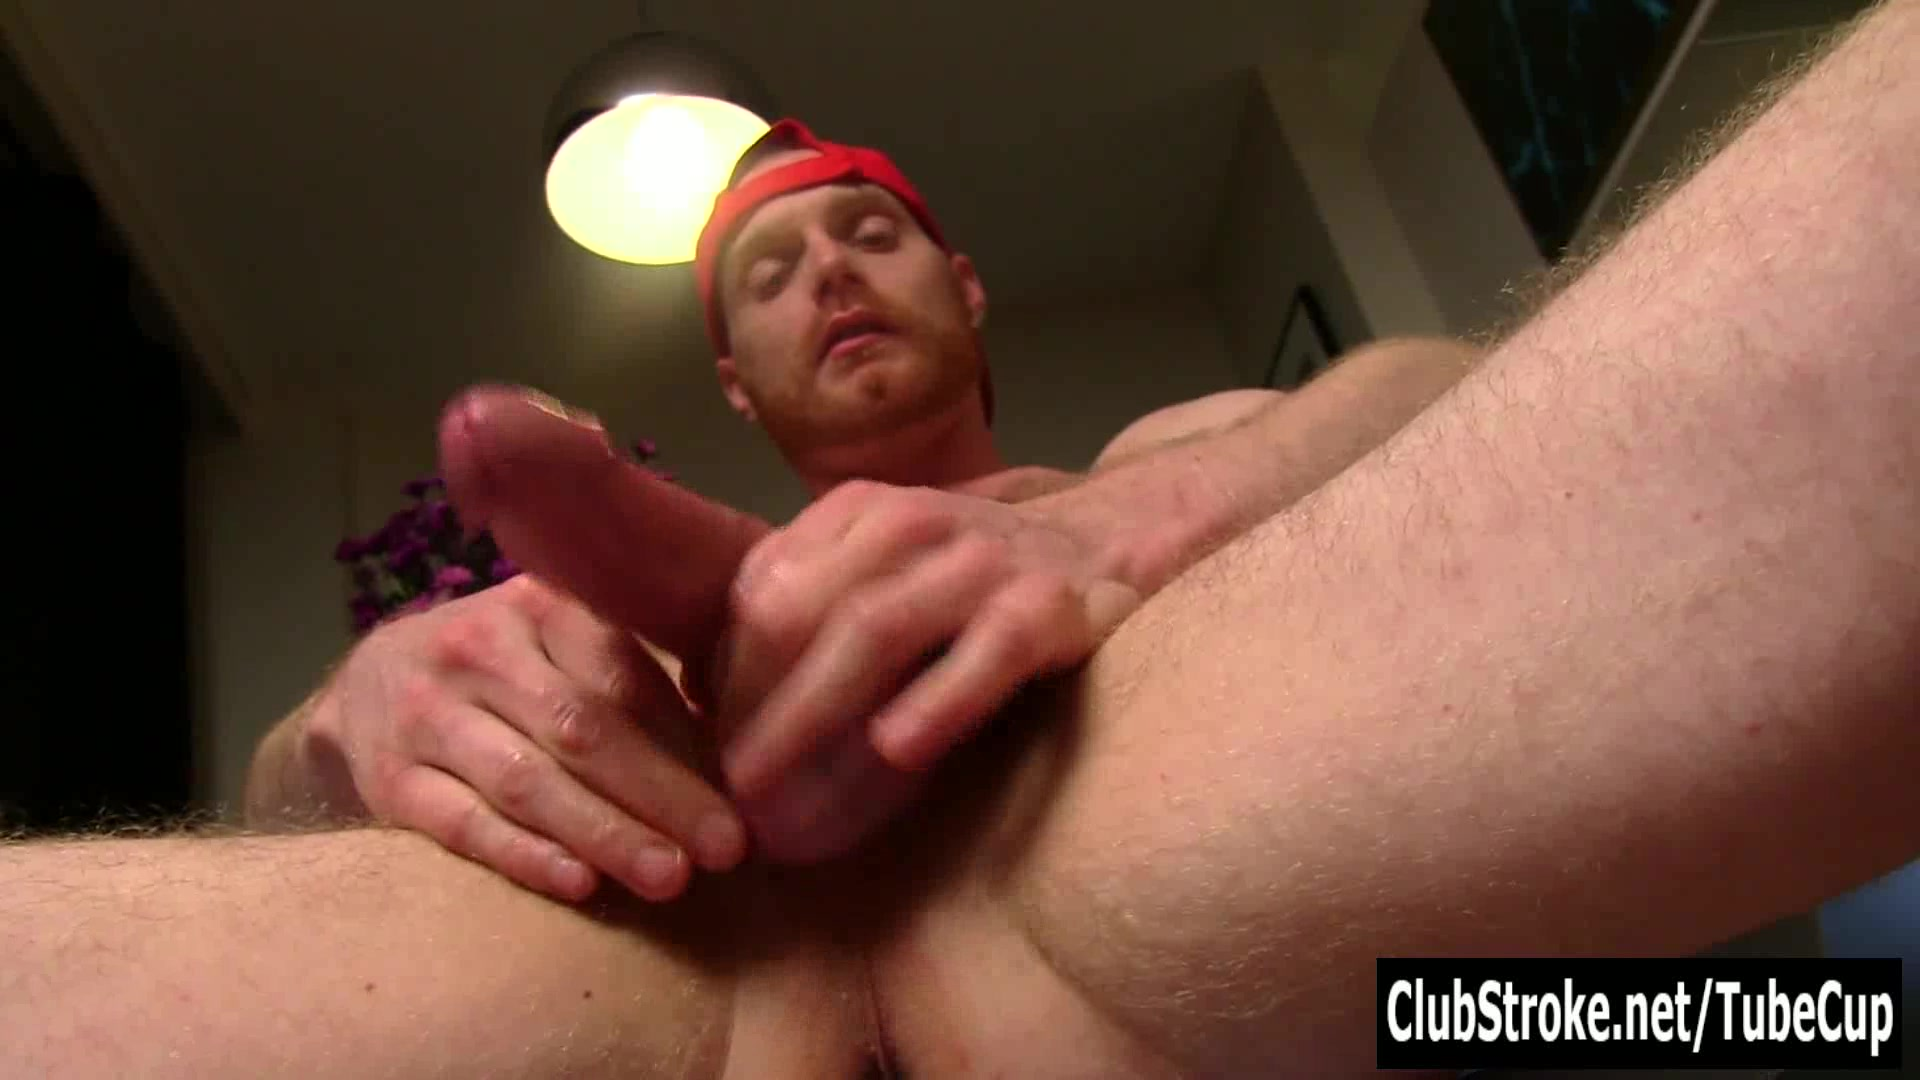 Redhead Straight Guy JJ Masturbating Girls naked and embarrassing moments